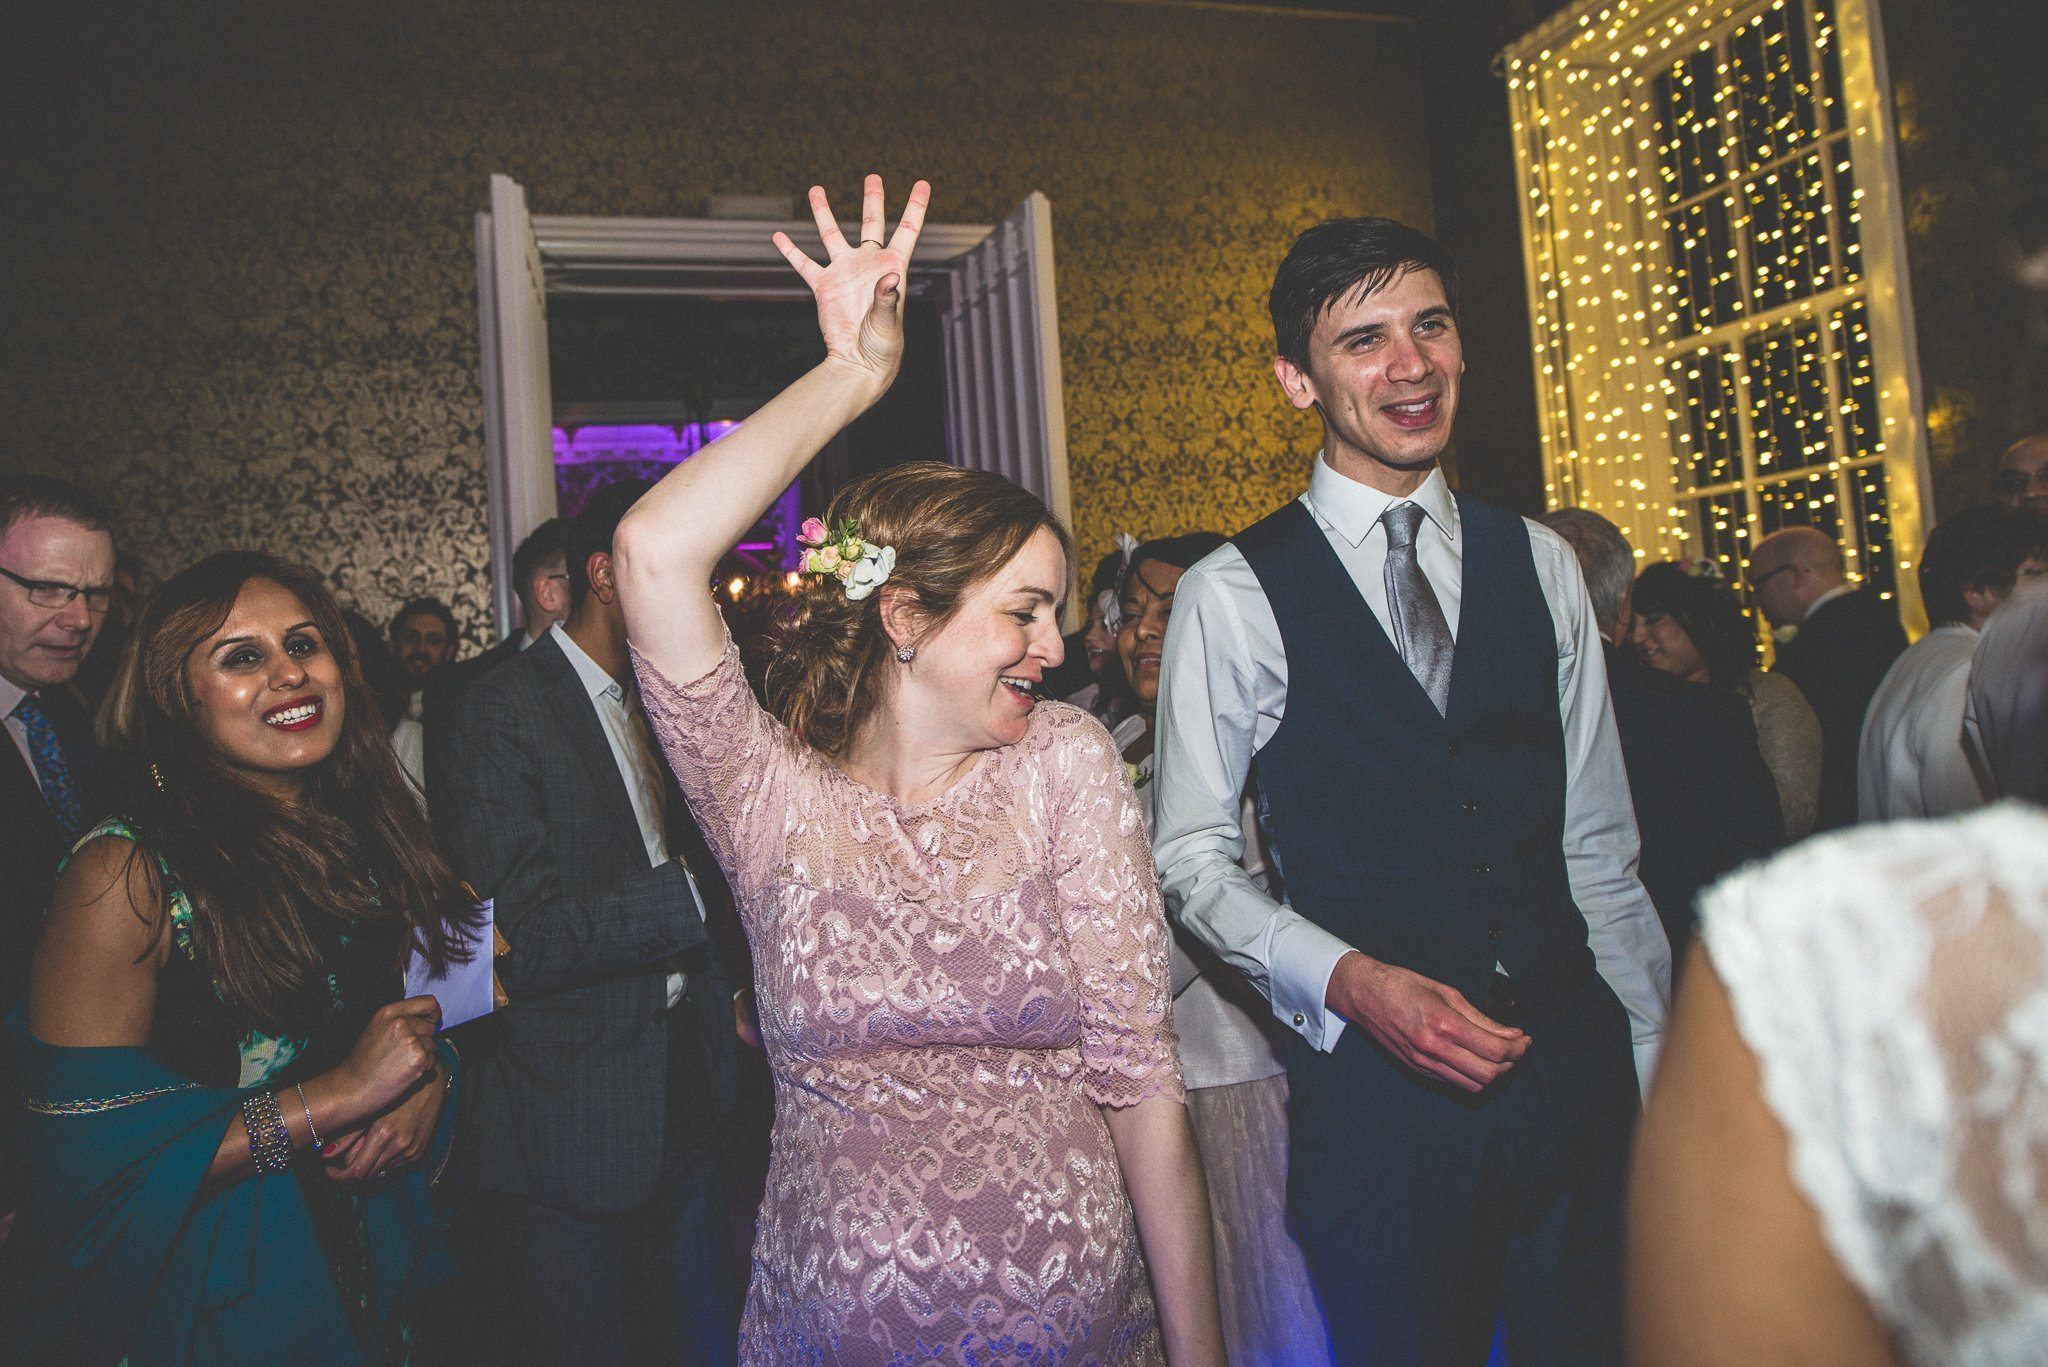 A heavily pregnant bridesmaid in a pink lace dress rocks out on the dancefloor